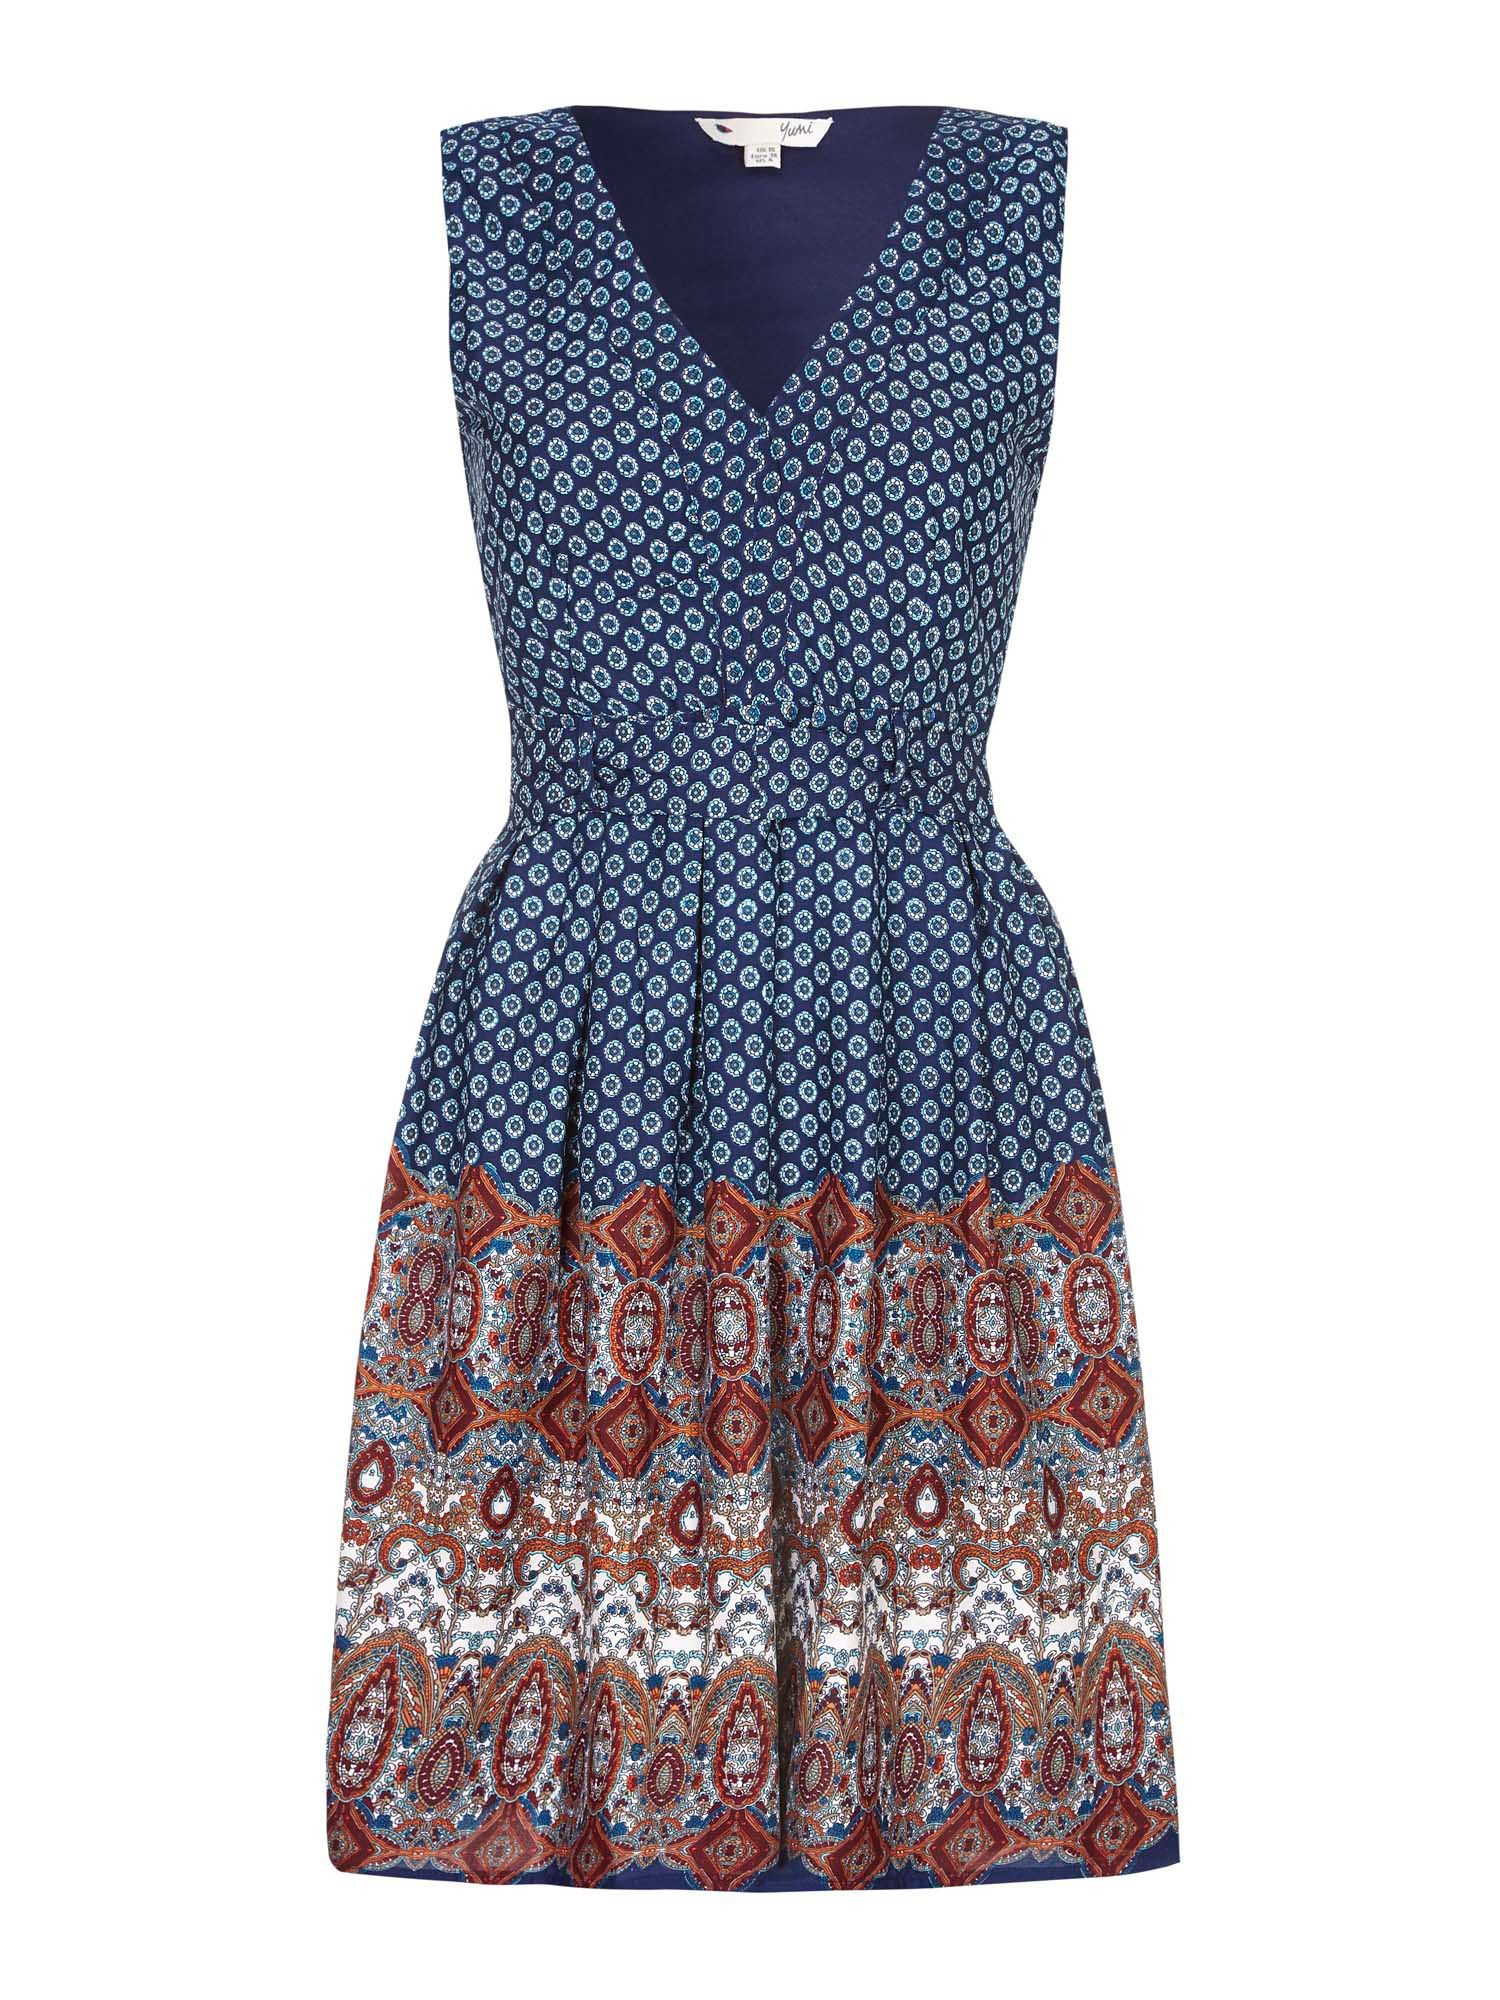 Yumi Digital Printed Boarder Dress, Blue